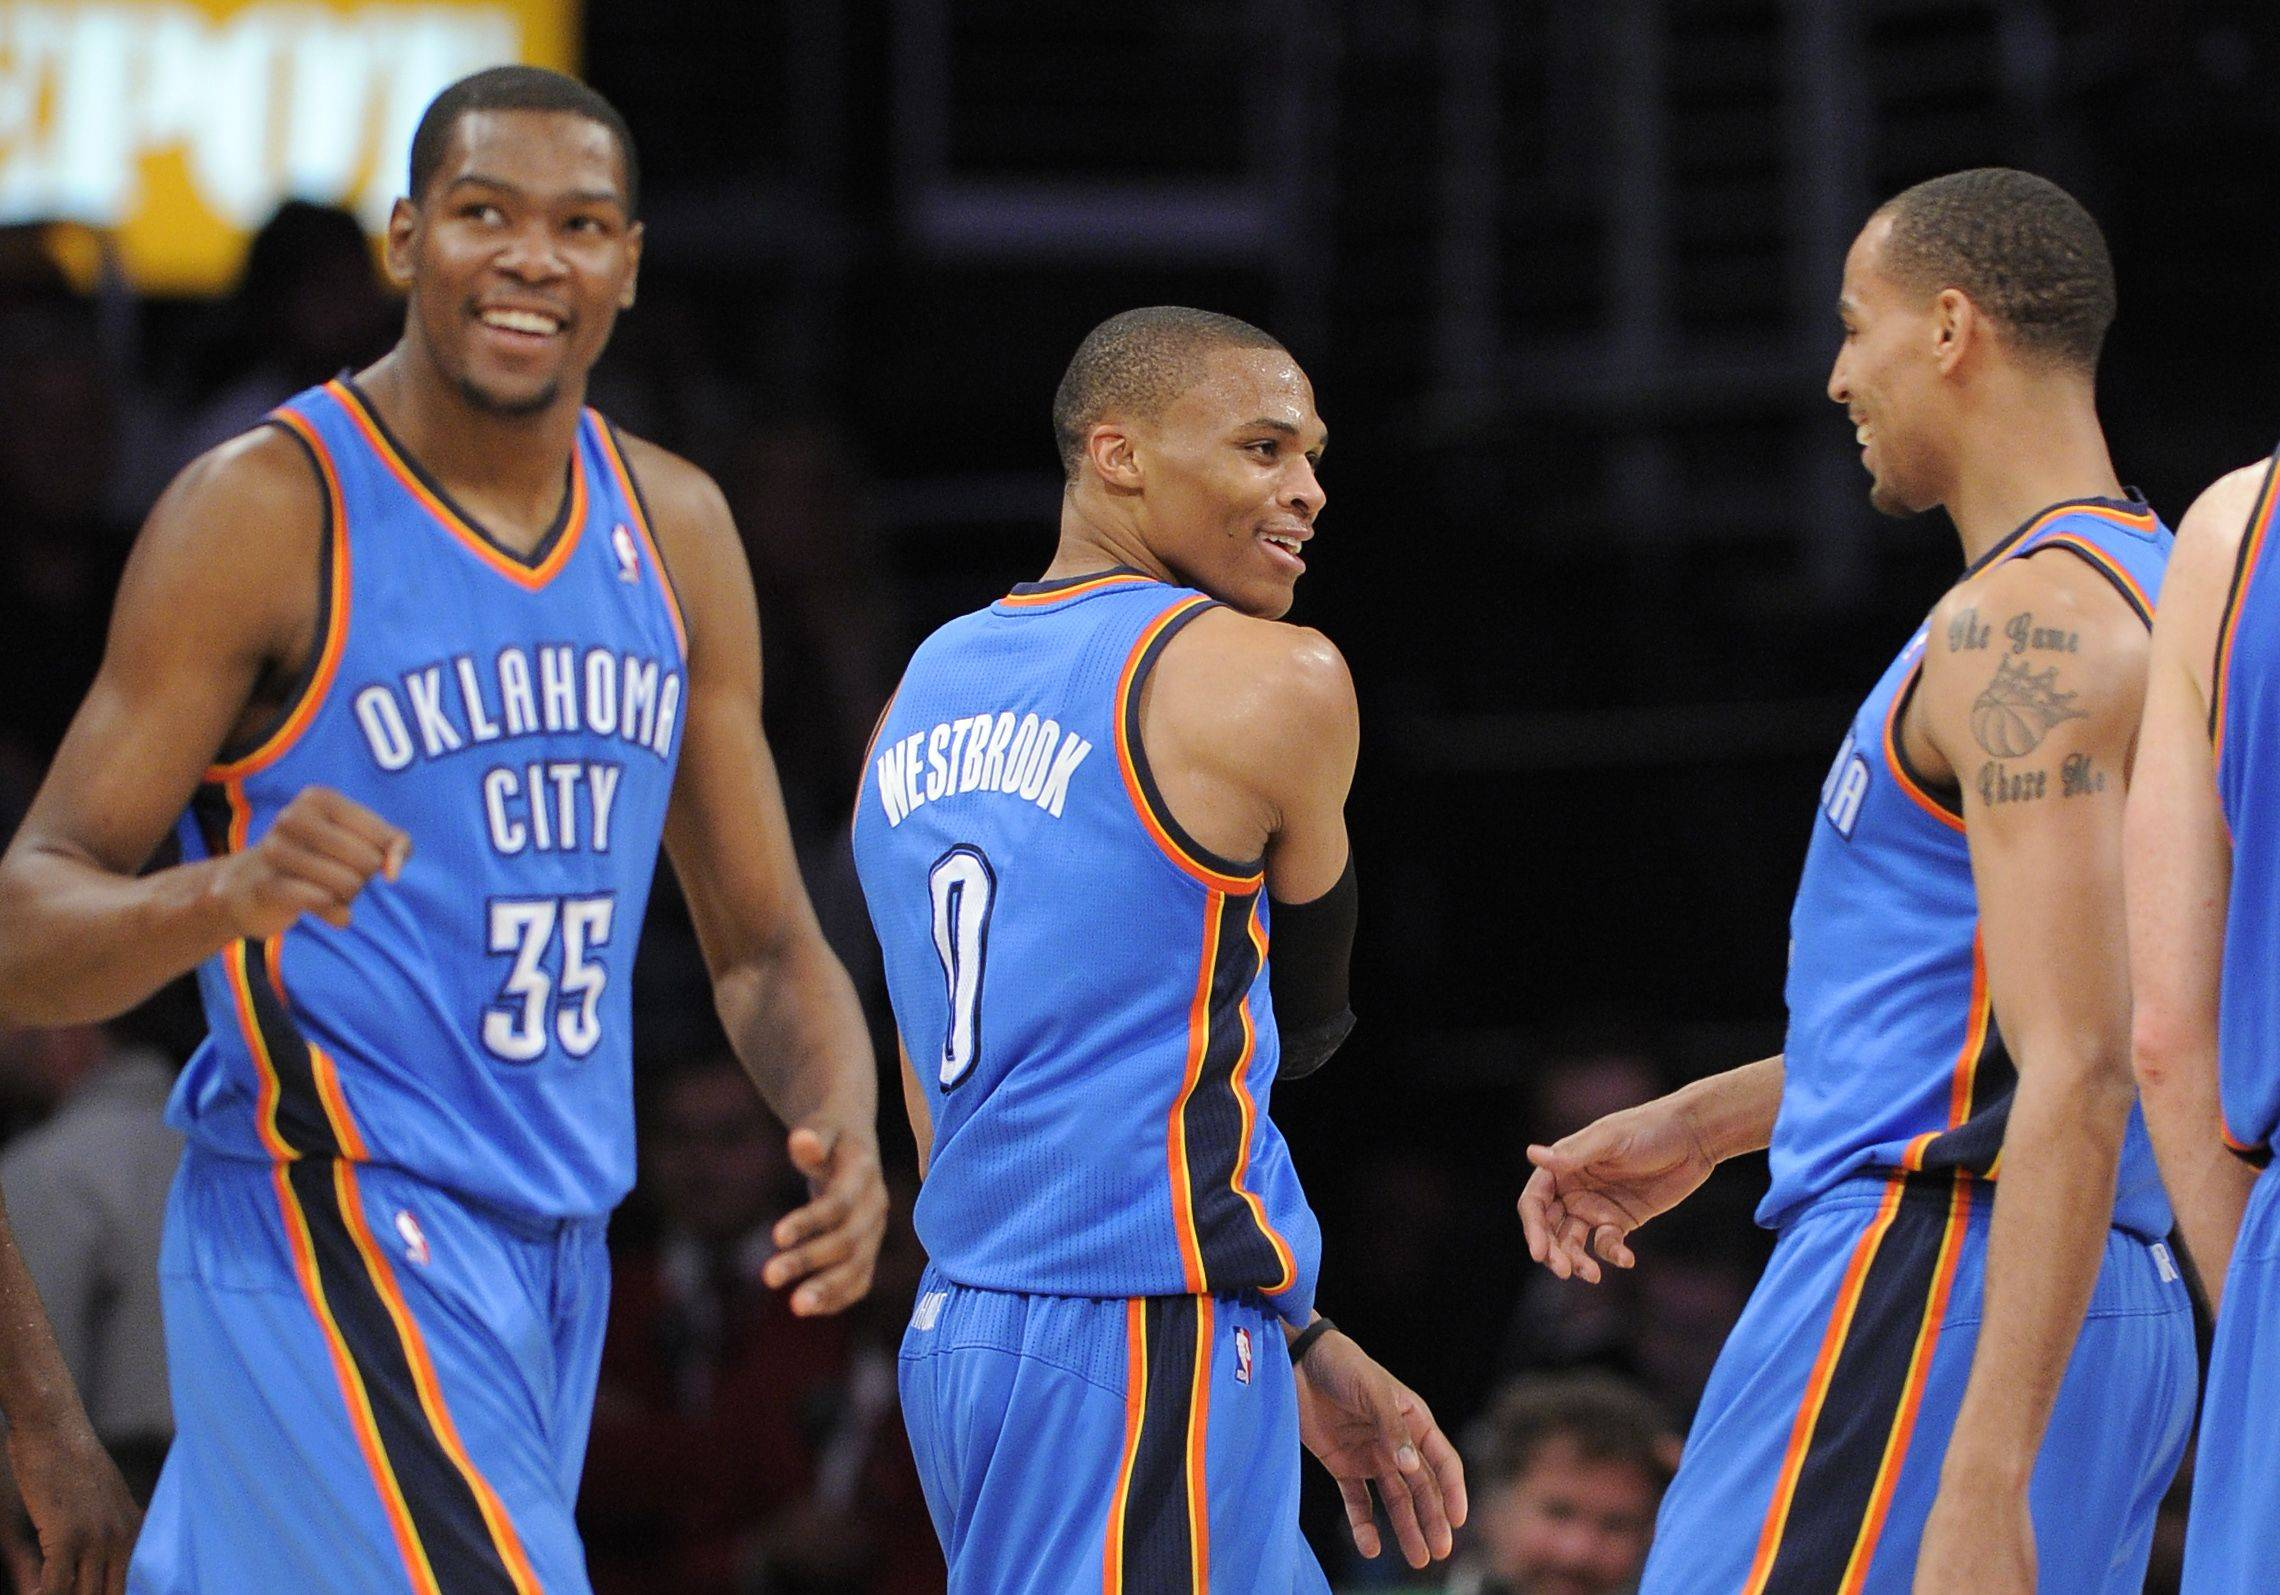 Oklahoma City Thunder forward Kevin Durant, guard Russell Westbrook, center, and guard Thabo Sefolosha of Switzerland celebrate during an April 120-106 win over Los Angeles.